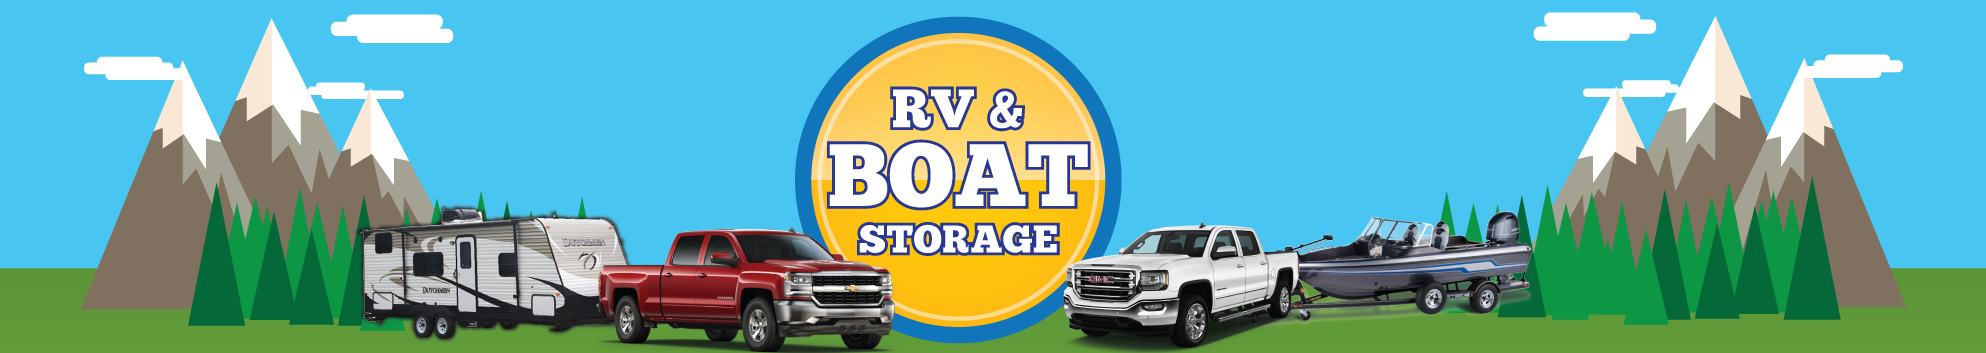 RV Boat Storage